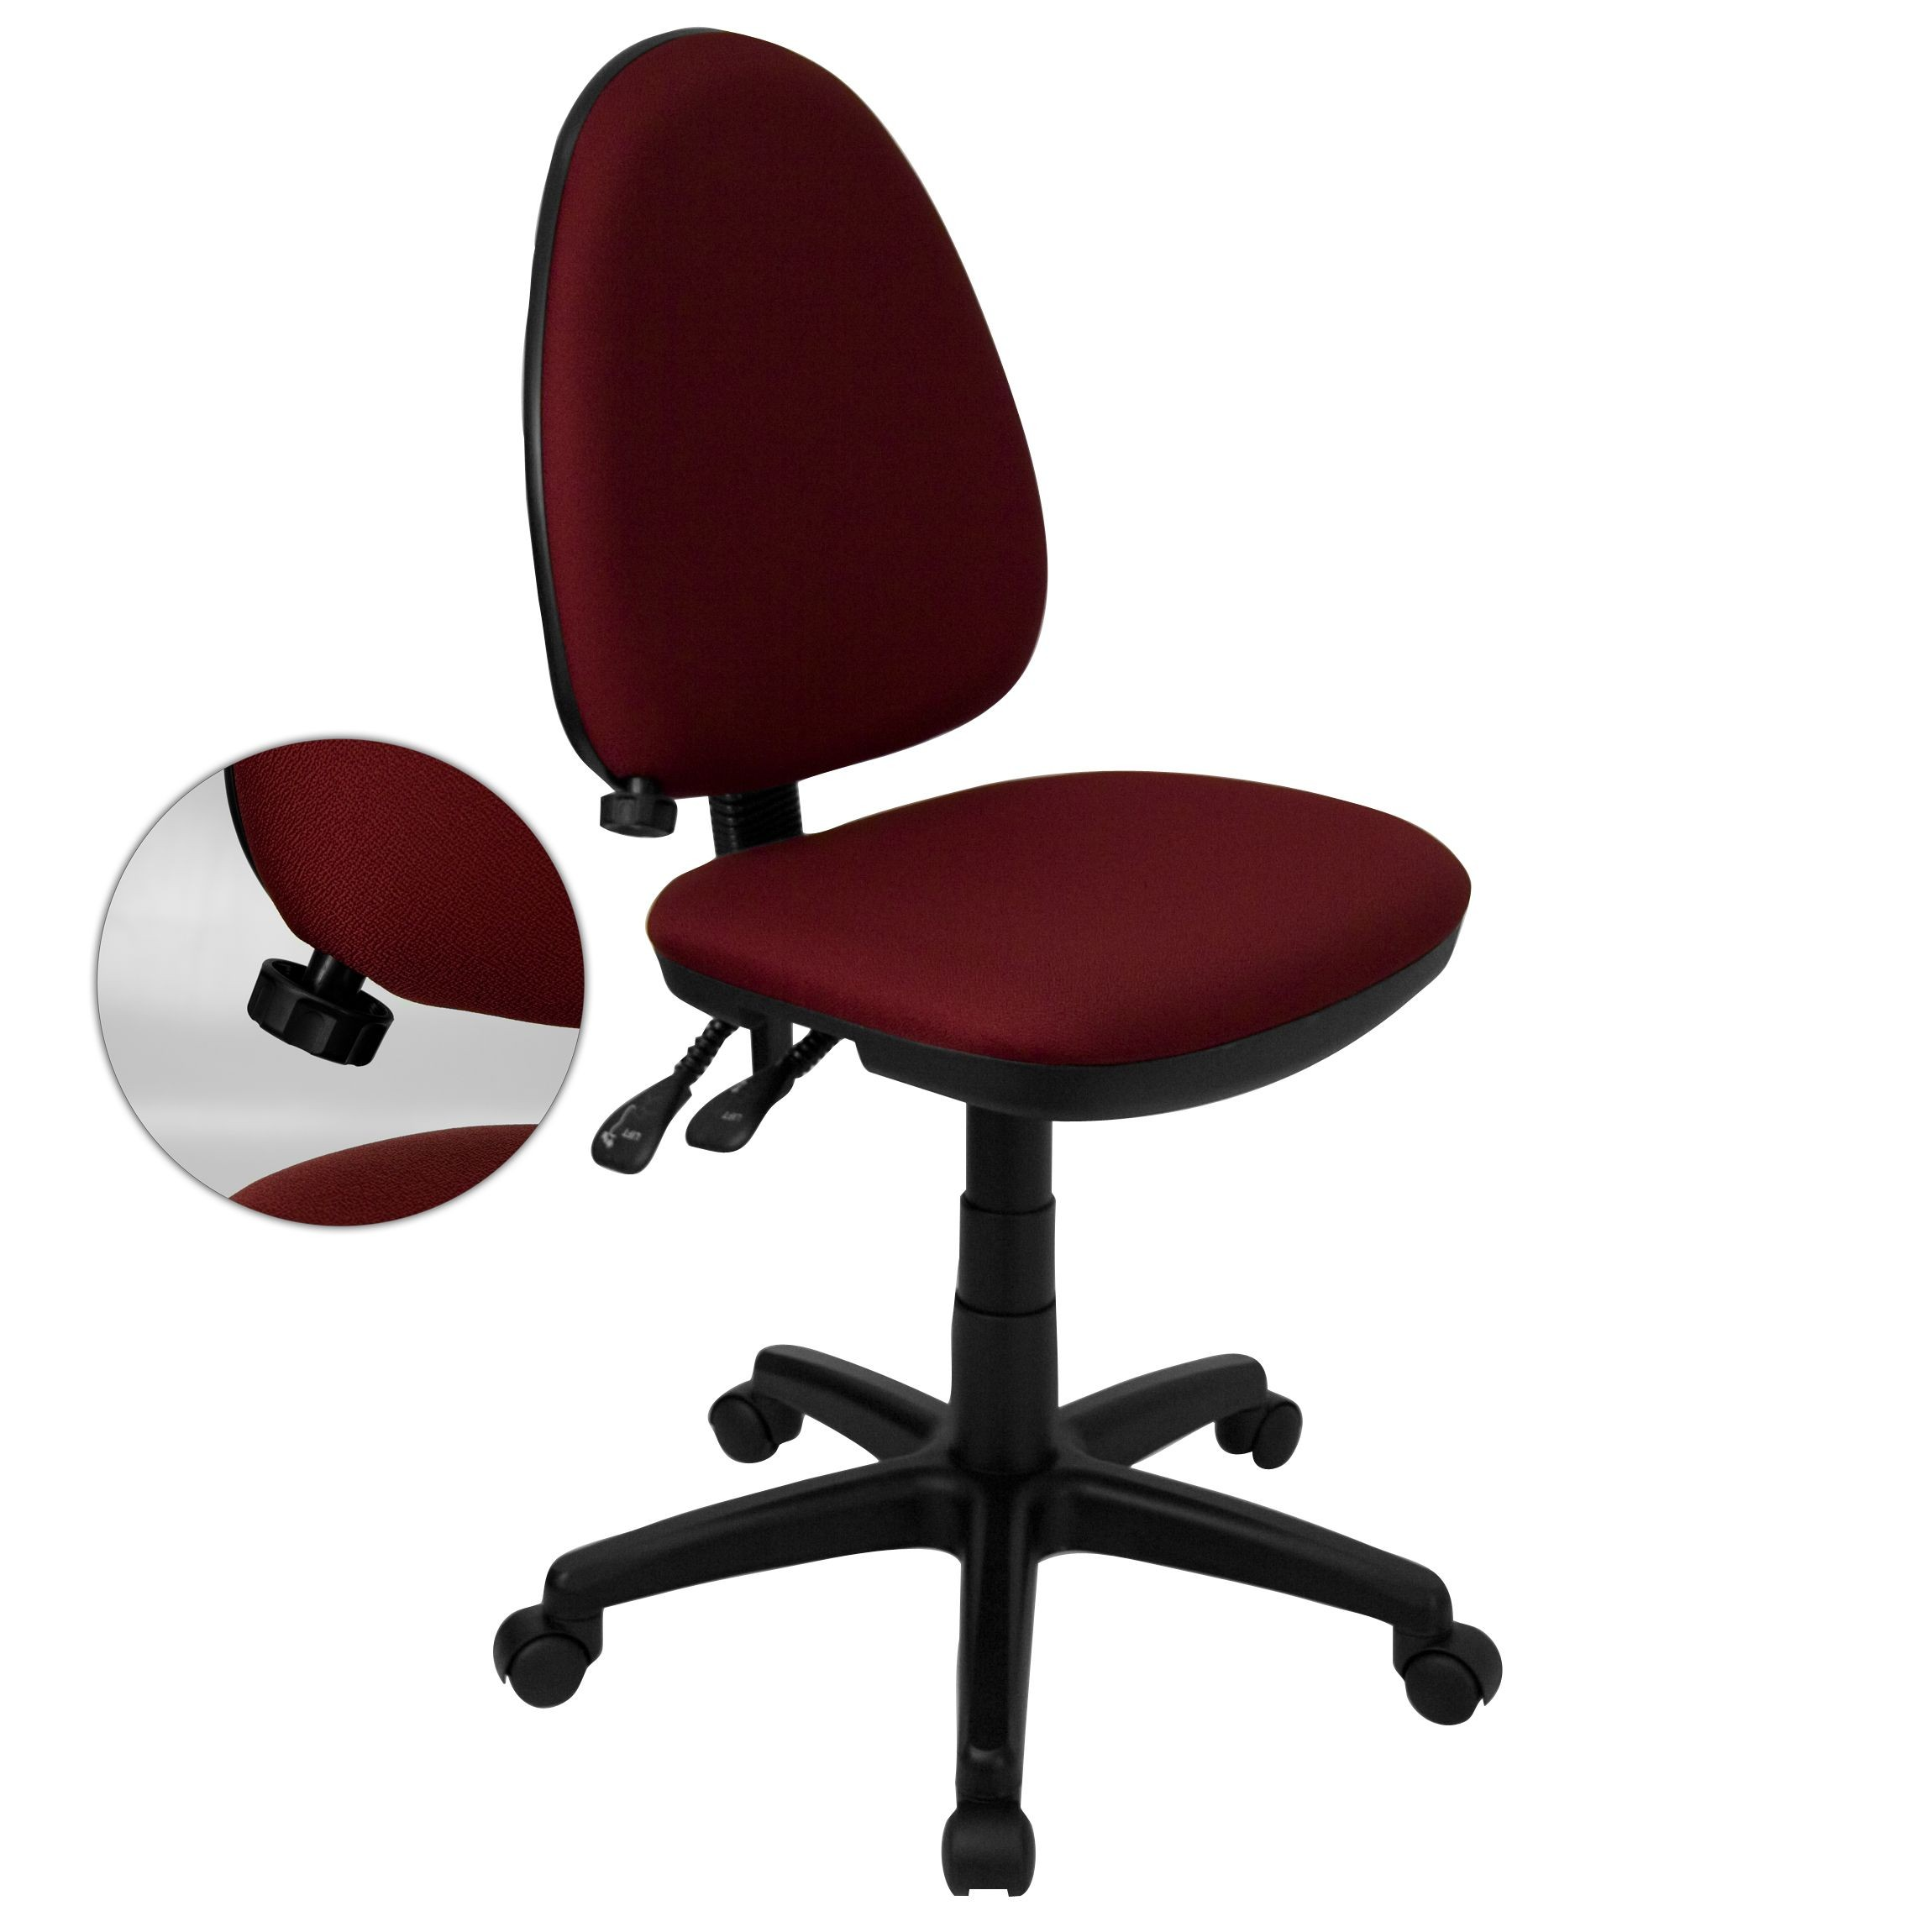 Flash Furniture WL-A654MG-BY-GG Burgundy Fabric Multi-Function Task Chair with Adjustable Lumbar Support